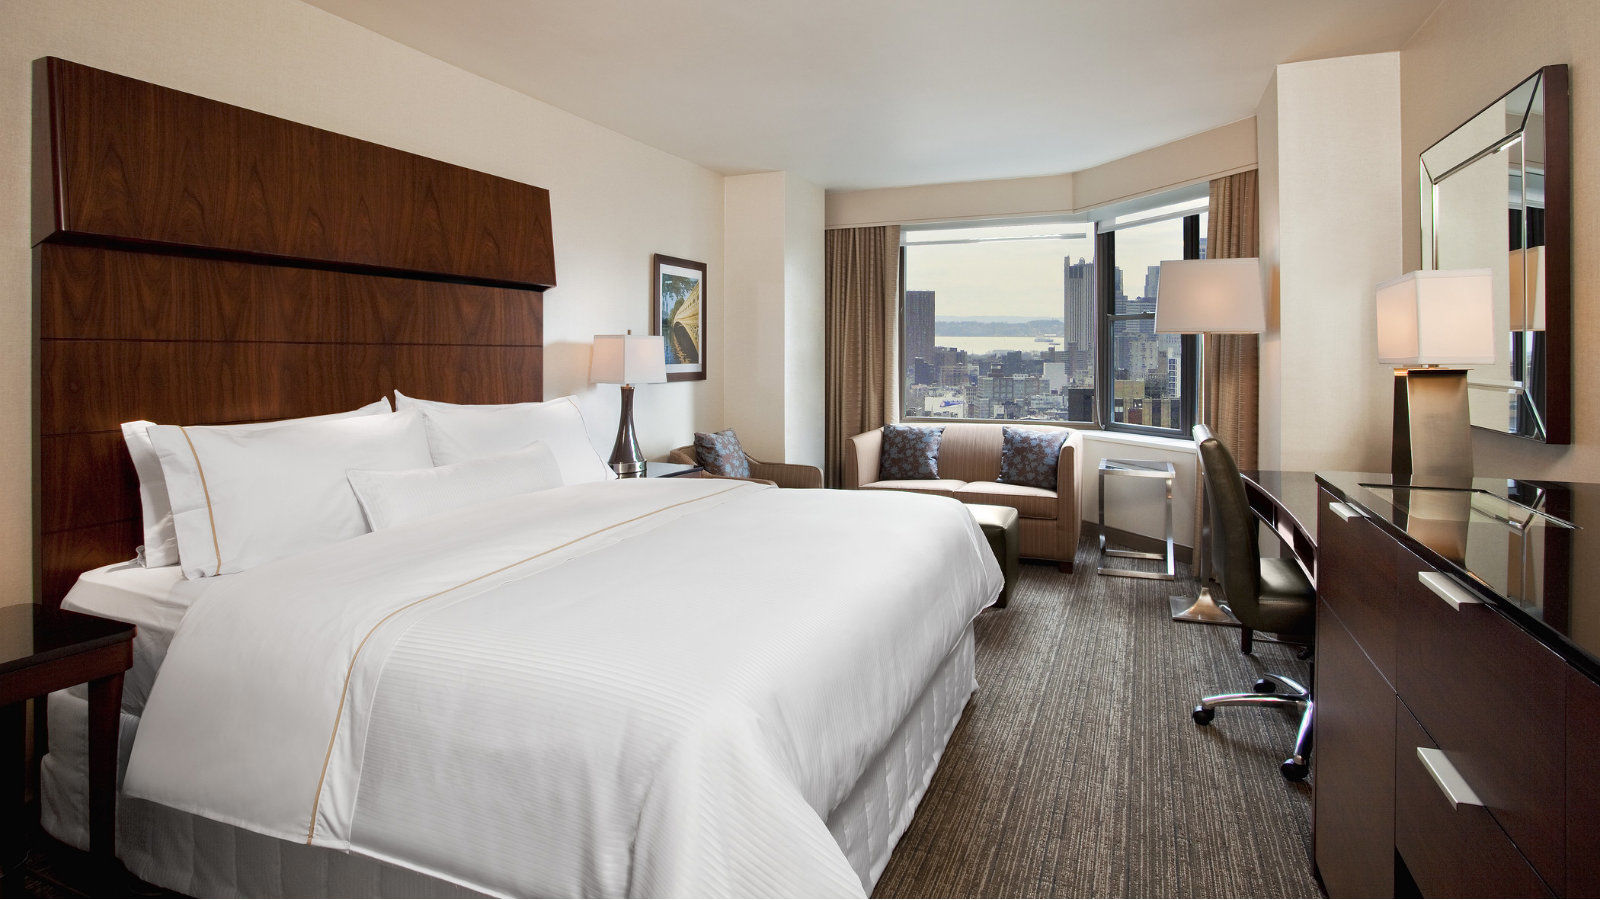 Two Bedroom Suites In San Francisco Room With A View The Westin New York Grand Central